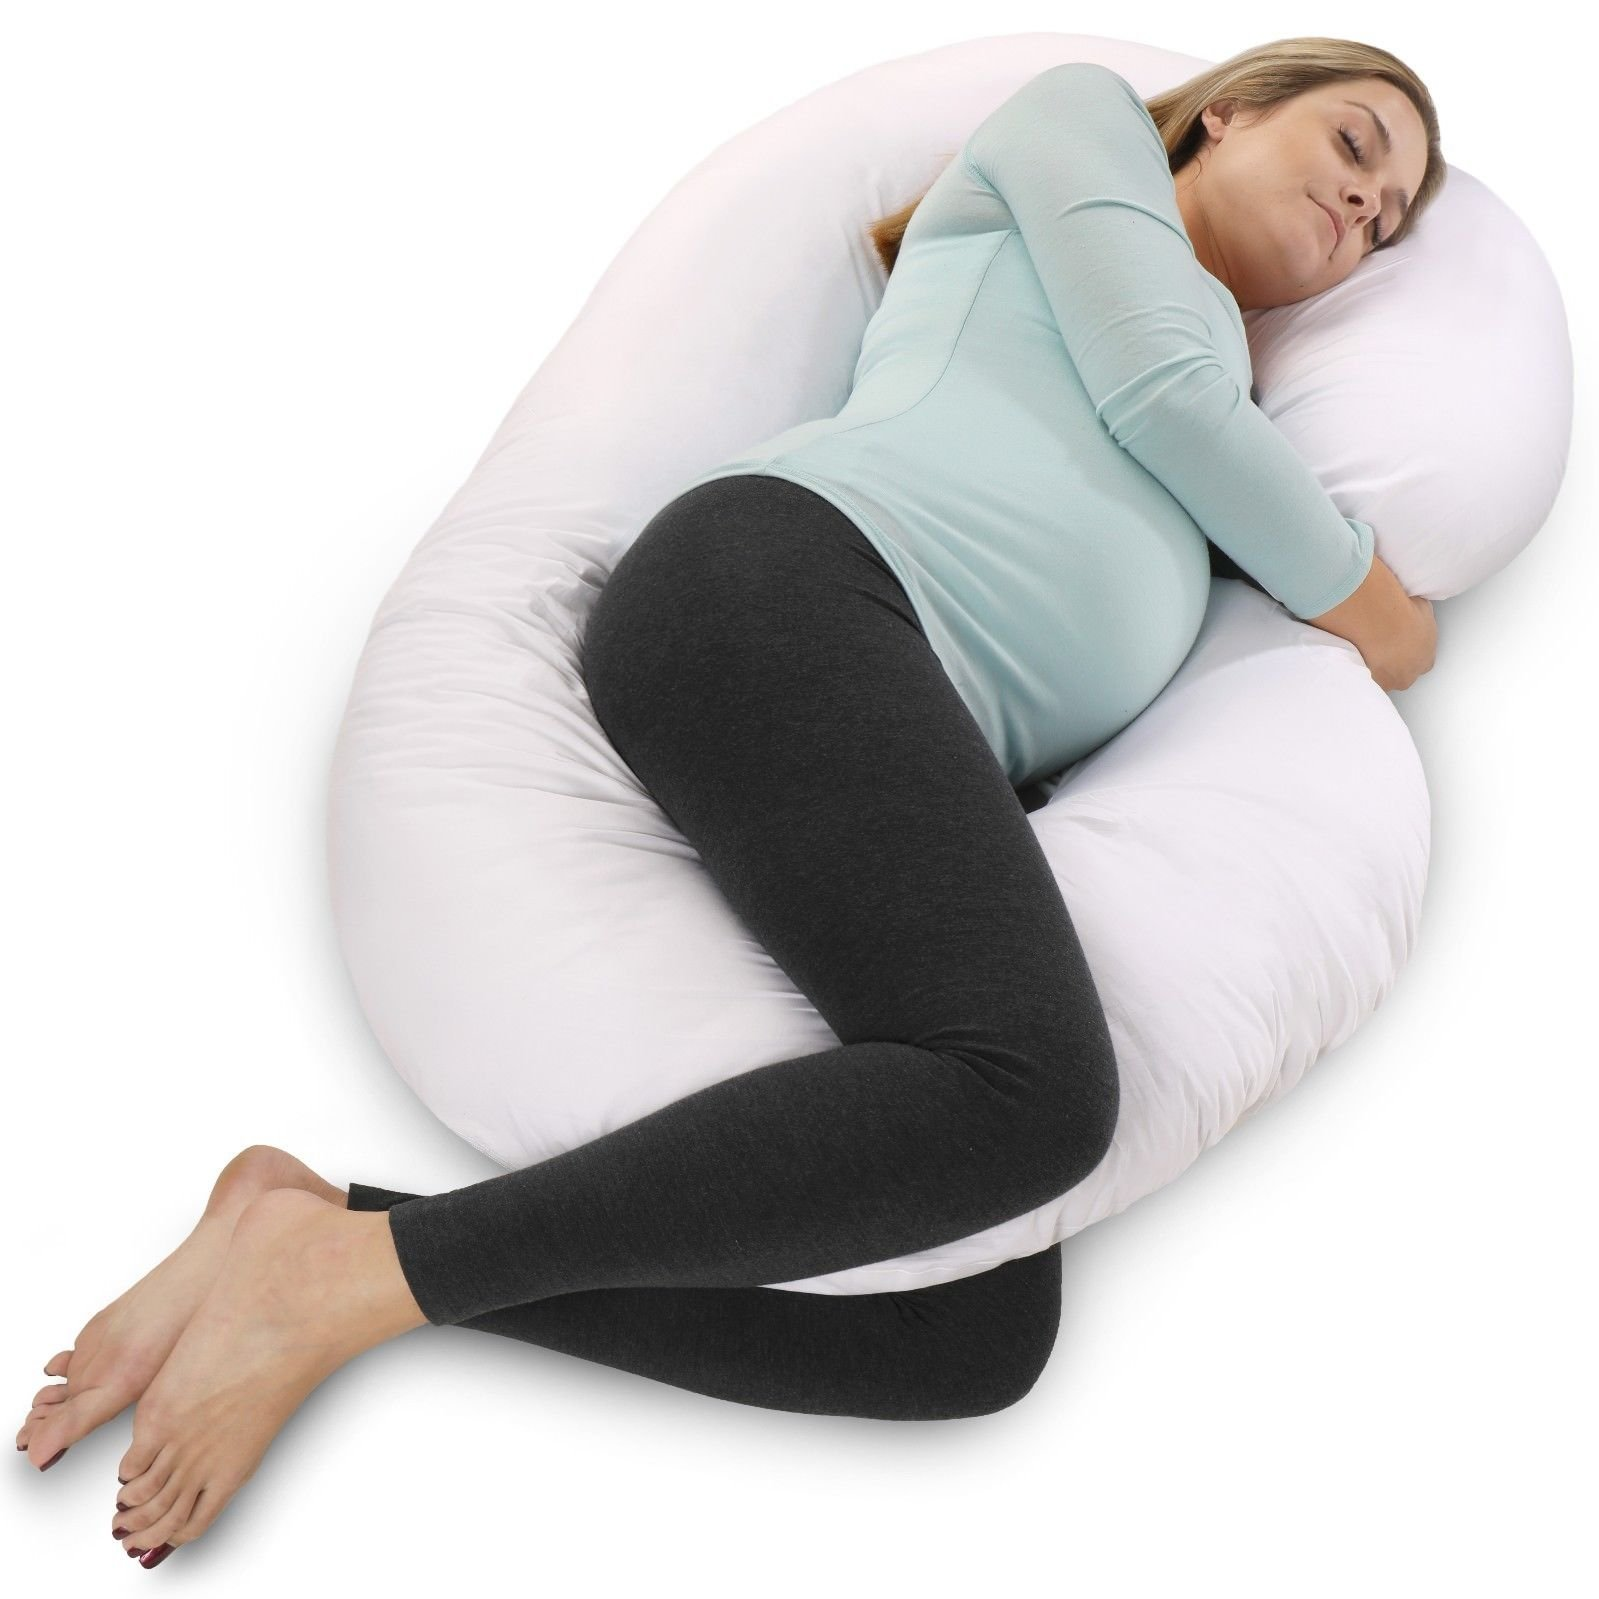 Pregnancy Pillow - Full Body Pillow for Maternity & Pregnant Women by iShapify LLC (White)